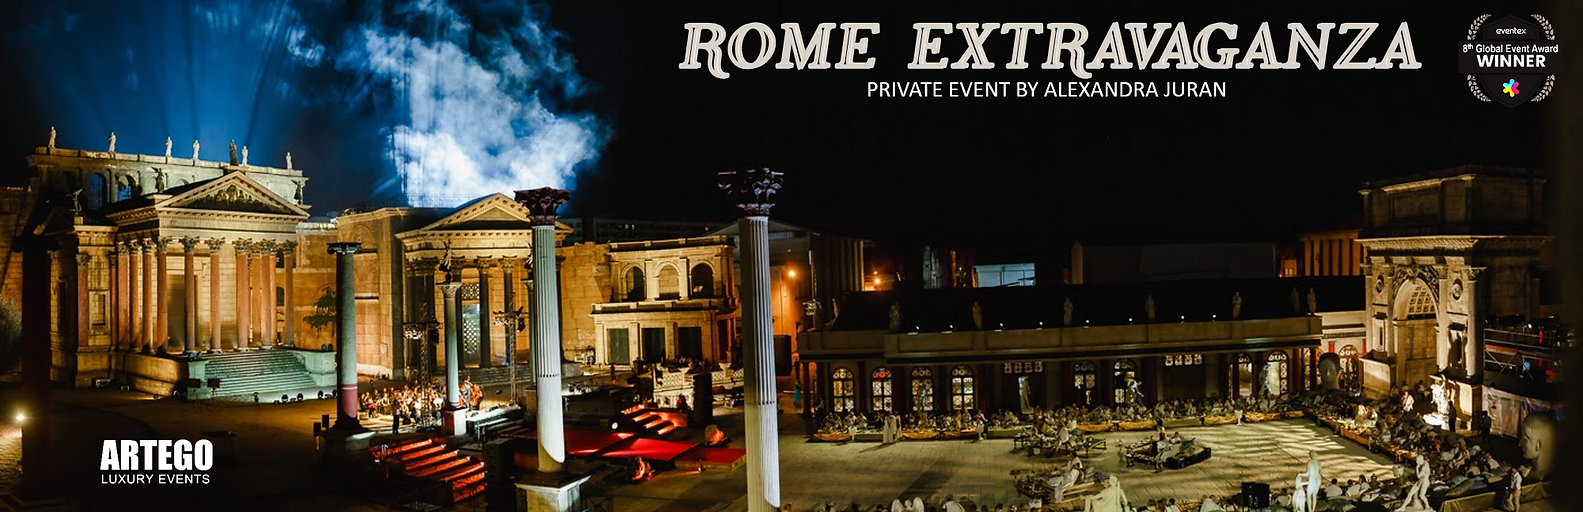 ROME-ARTEGO-LUXURY-EVENTS 4.png